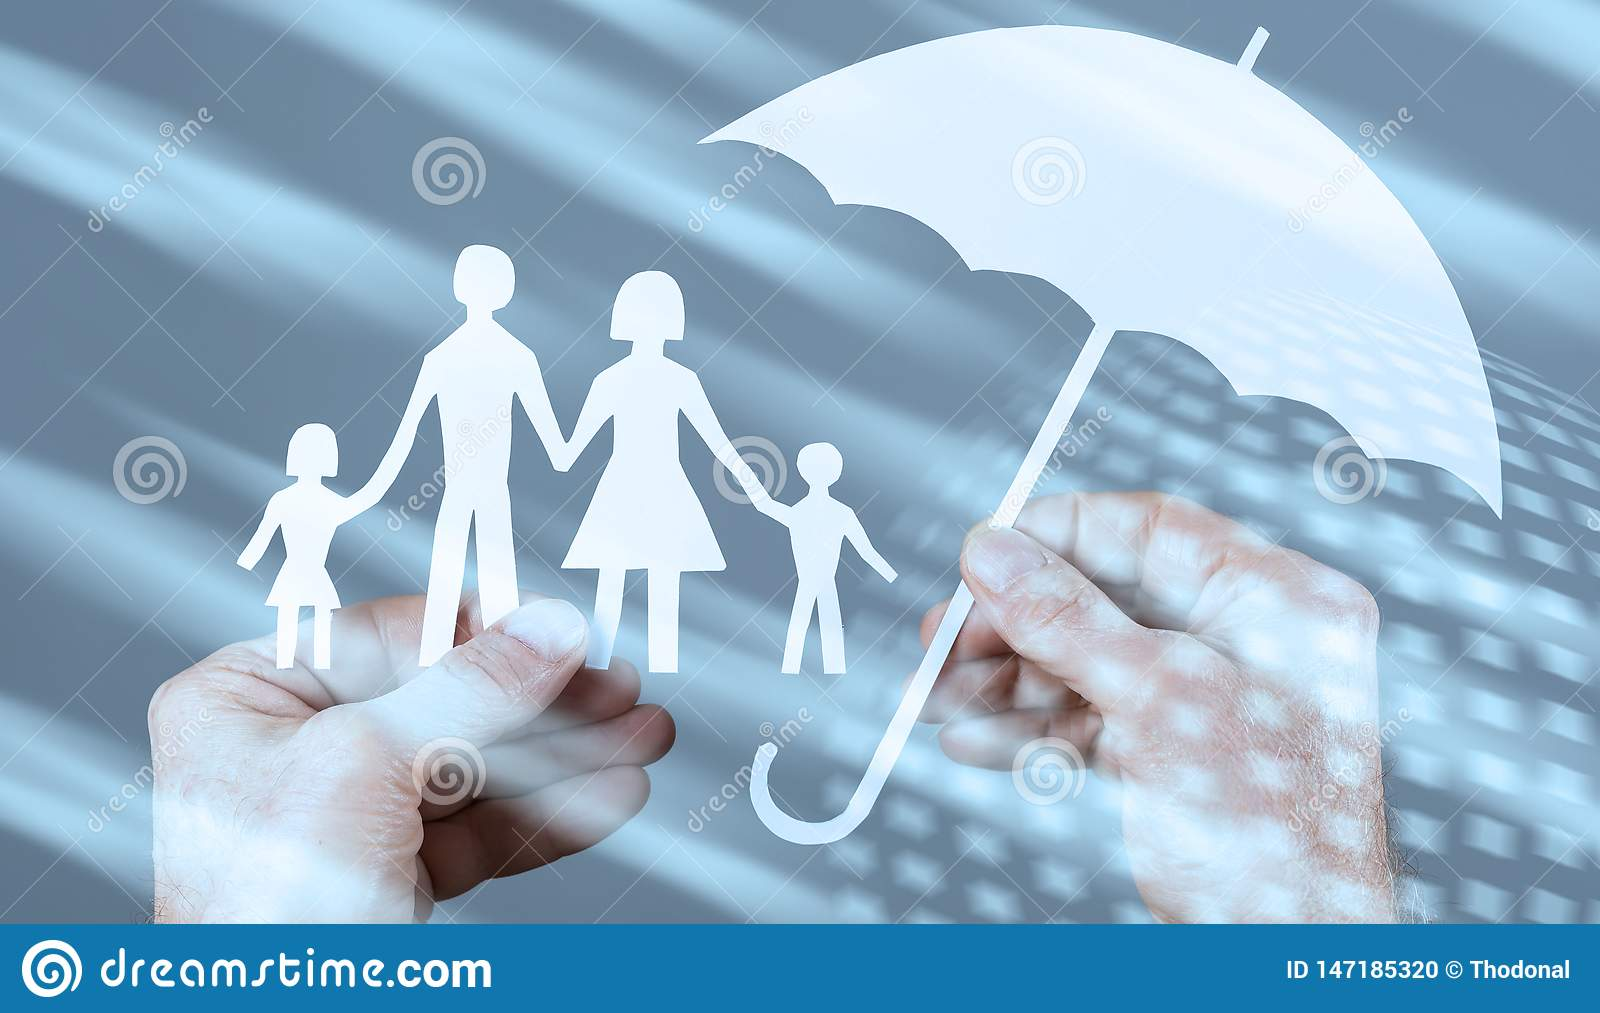 Family protection coverage concept with light effect